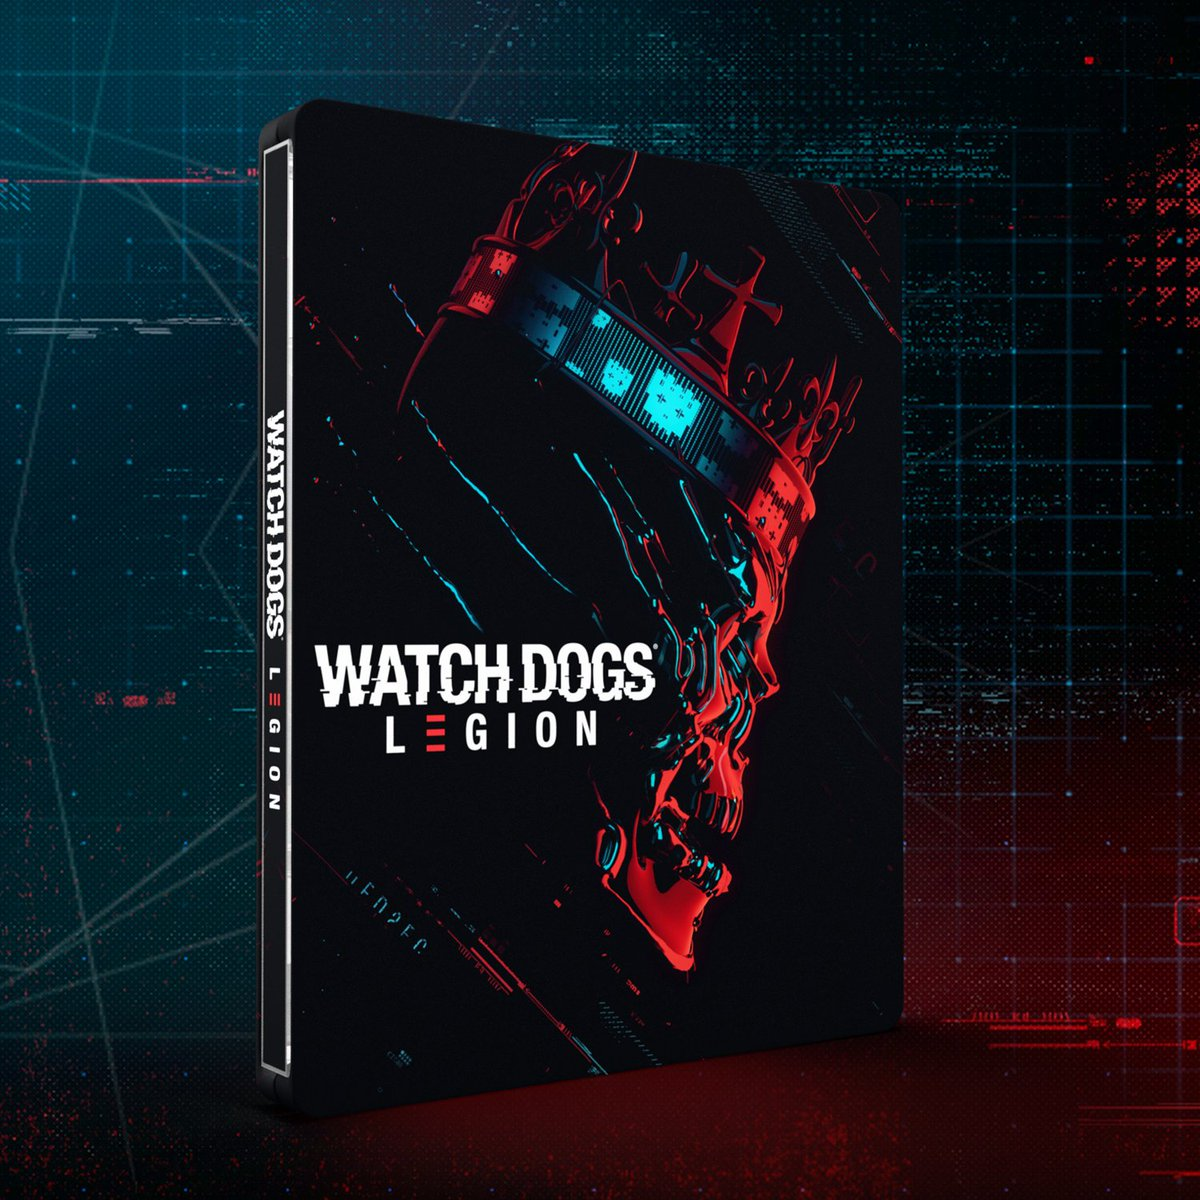 Watch Dogs: Legion Collector's SteelBook® Edition.  Time to mask up and join the Resistance on October 29th !  🐽 https://t.co/0fTH3v674e    #UBISOFT #WATCHDOGS #WatchDogsLegion #steelbook #steelbookcollector #collectorsedition #videogamesaddict #xboxone #xboxgames #ps4games https://t.co/KWAkFqB9nT